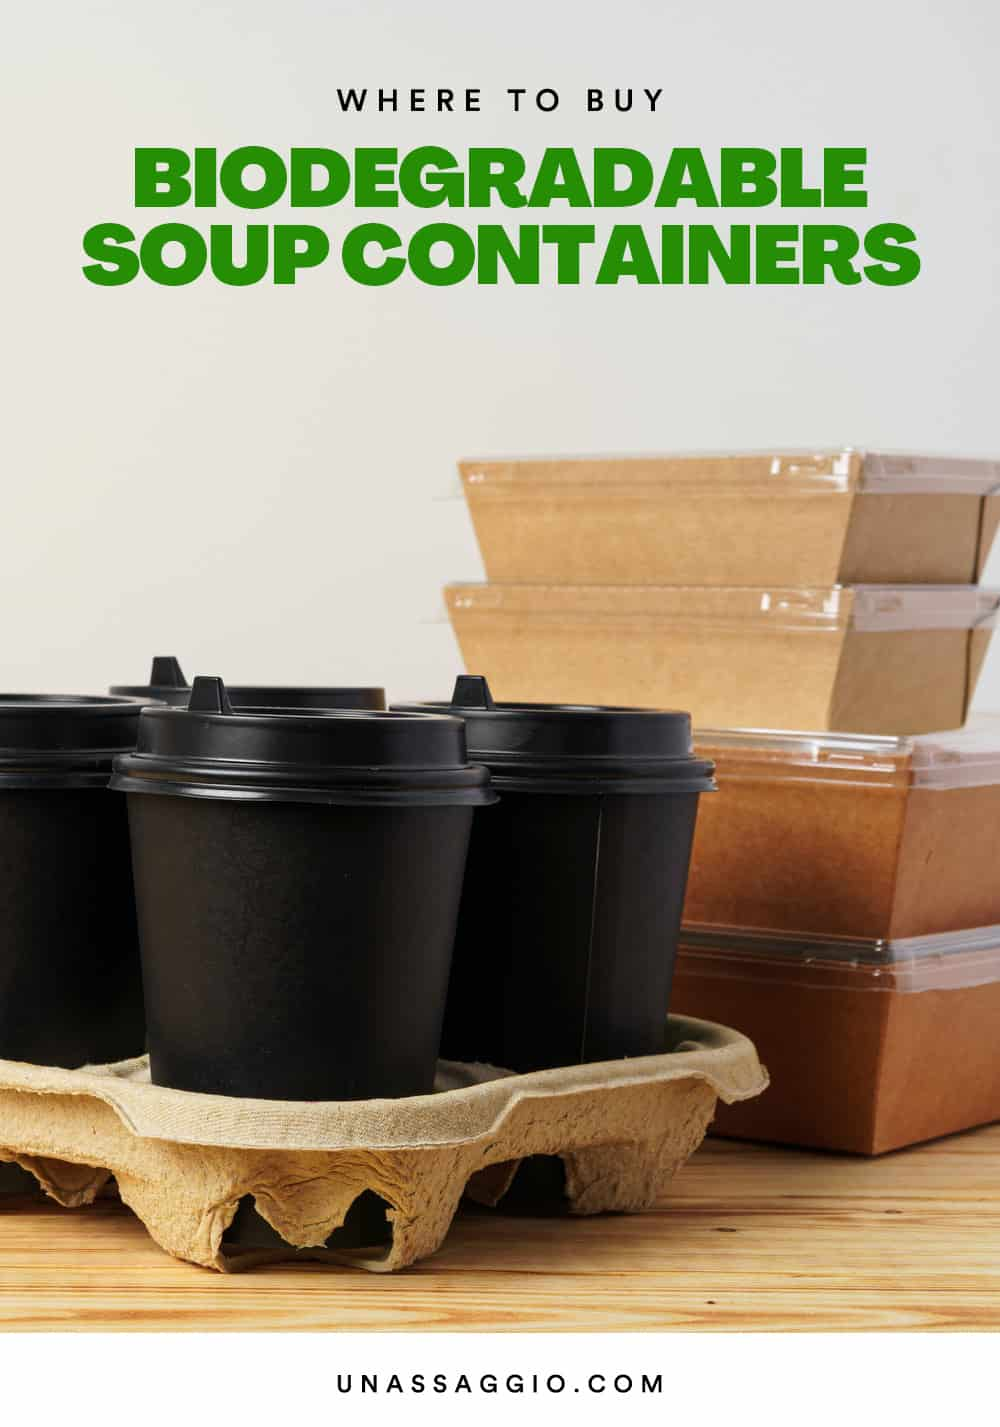 Biodegradable Soup Containers